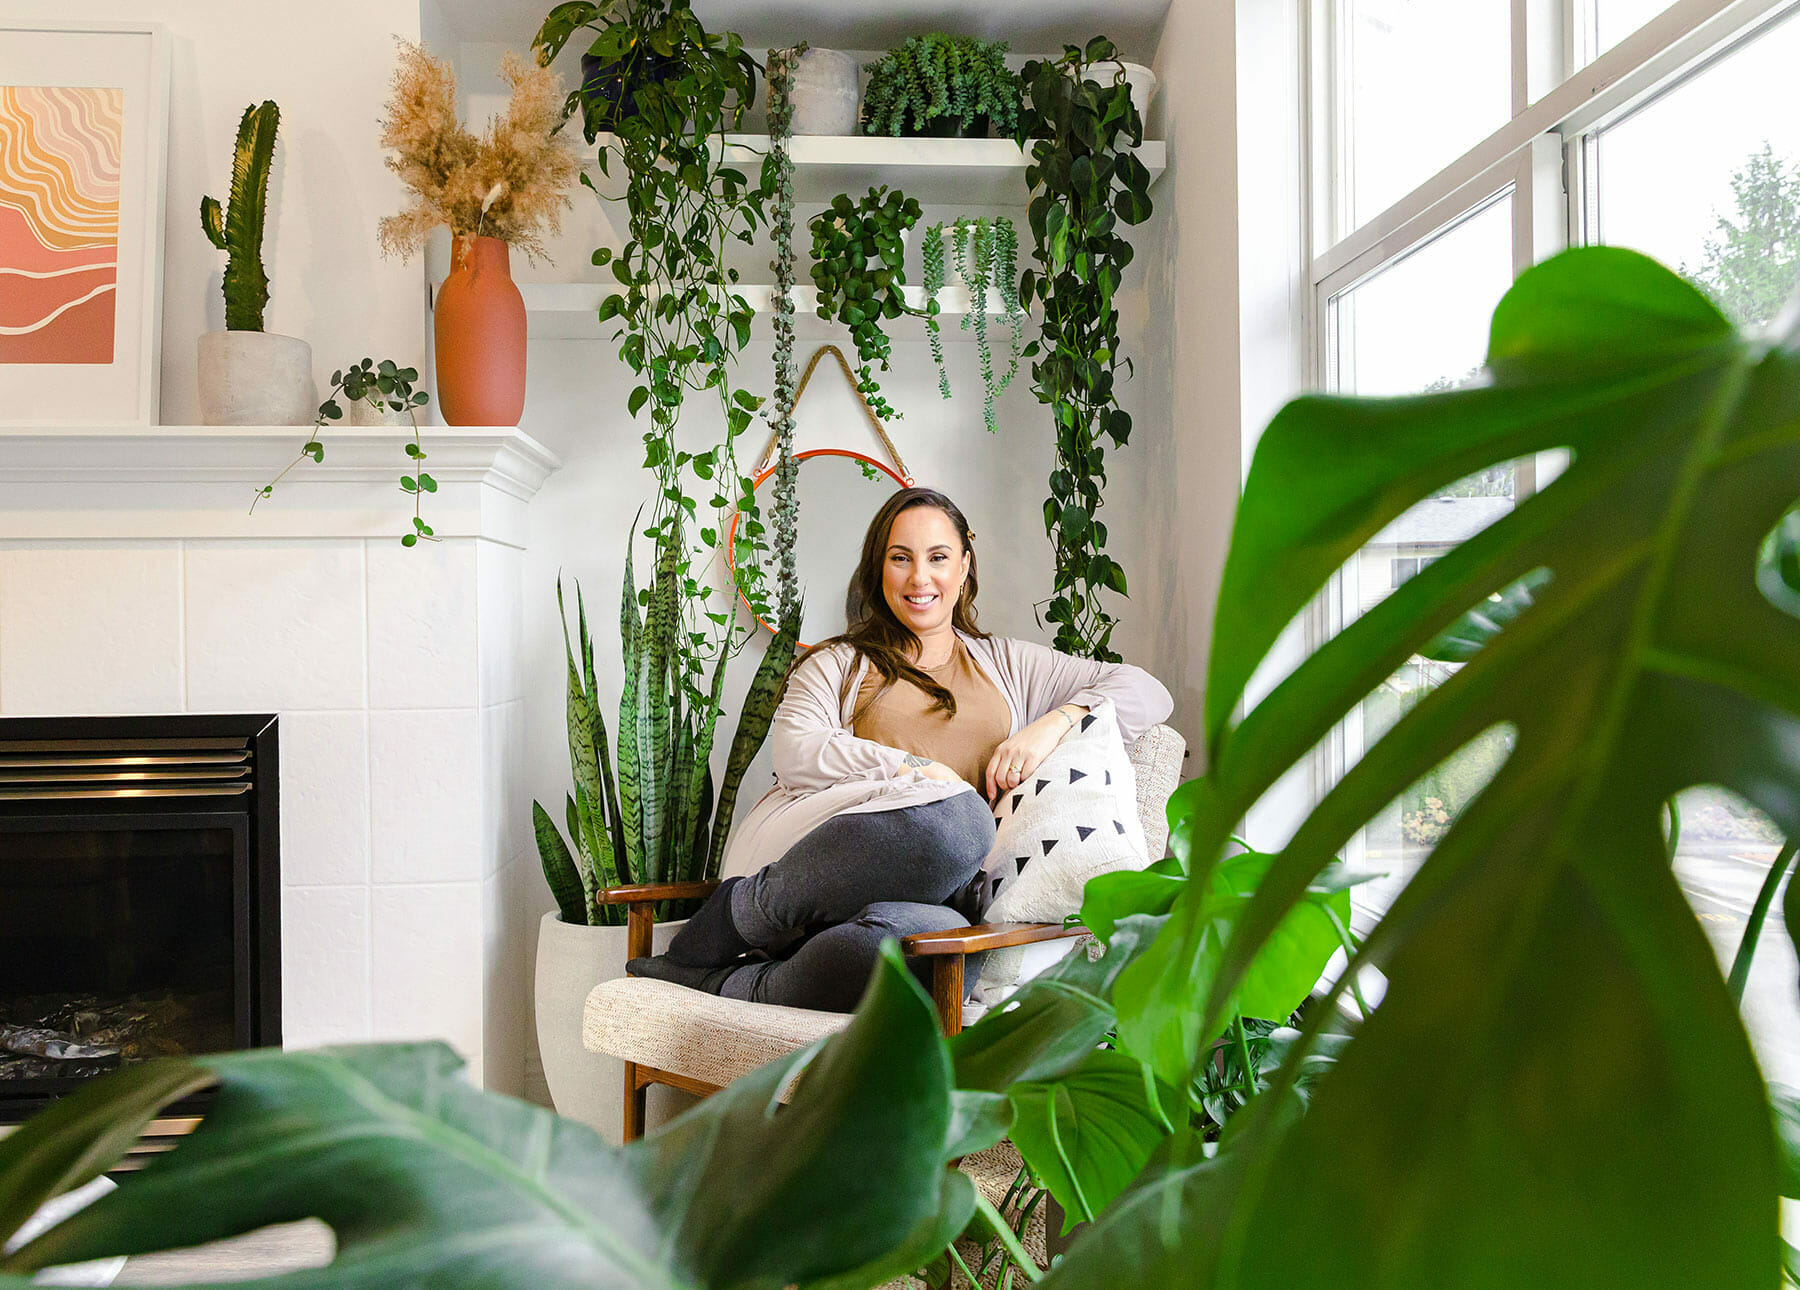 Plant designer Izabela Jankus in her home, surrounded by plants.